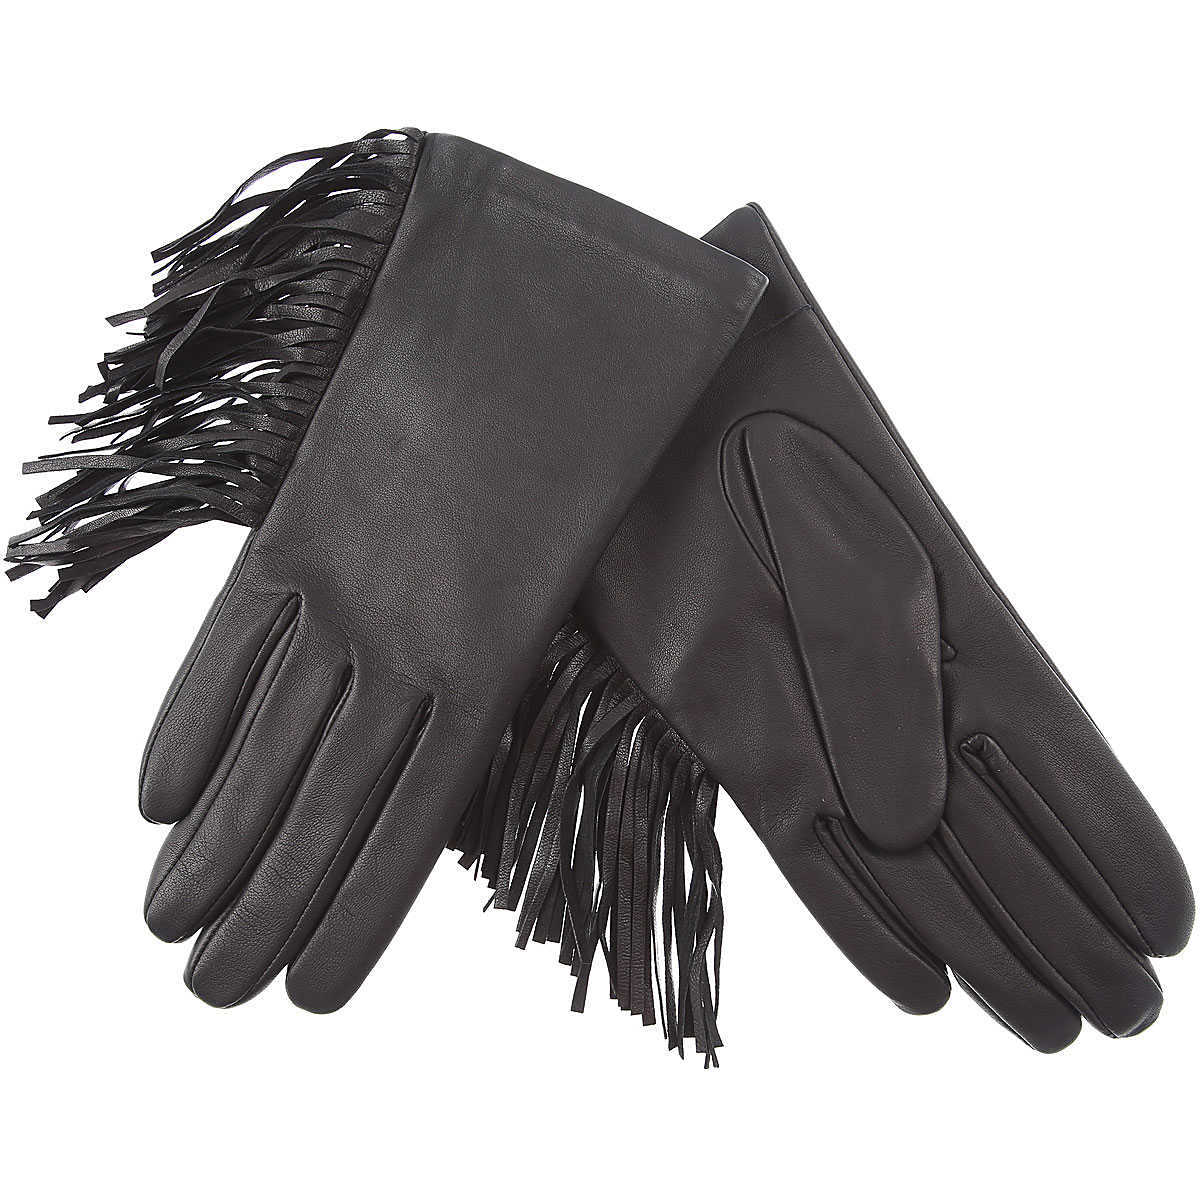 Liviana Conti Gloves for Women Black UK - GOOFASH - Womens GLOVES